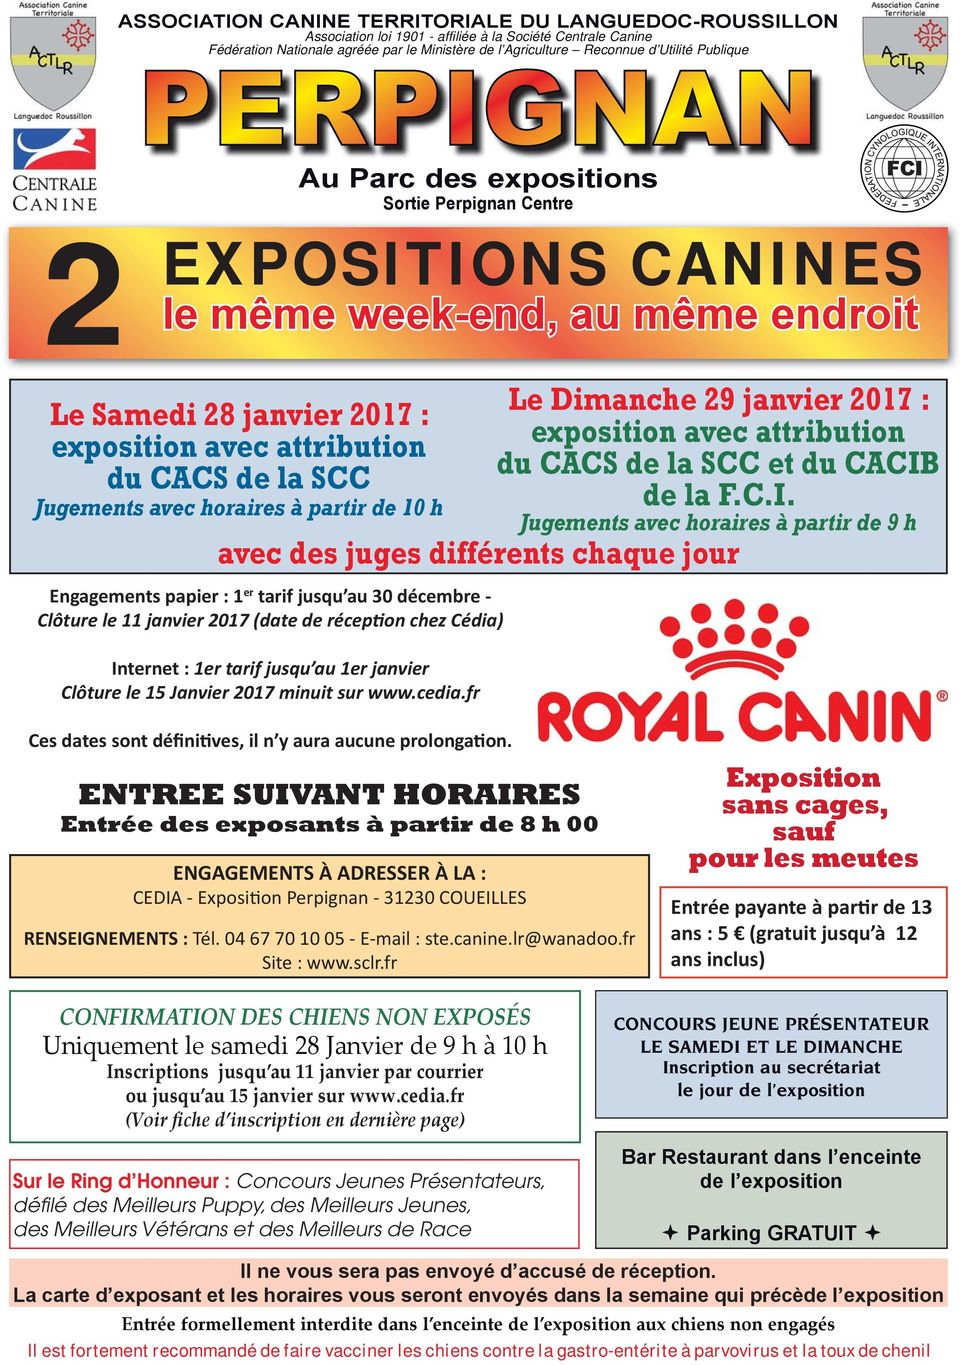 centrale canine languedoc roussillon